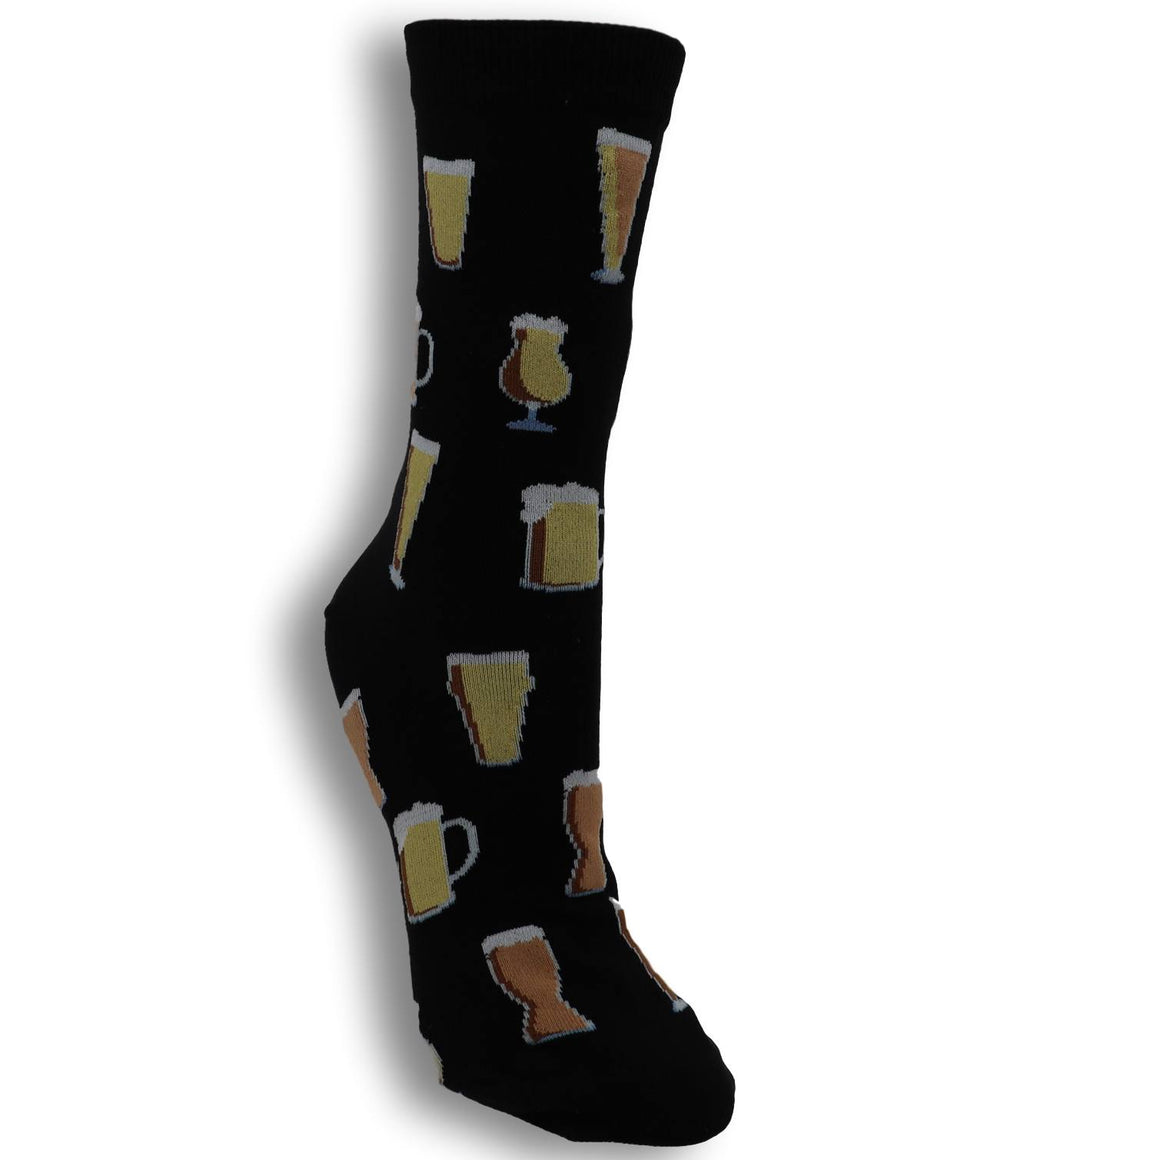 Prost! Beer Women's Socks by Sock it to Me - The Sock Spot